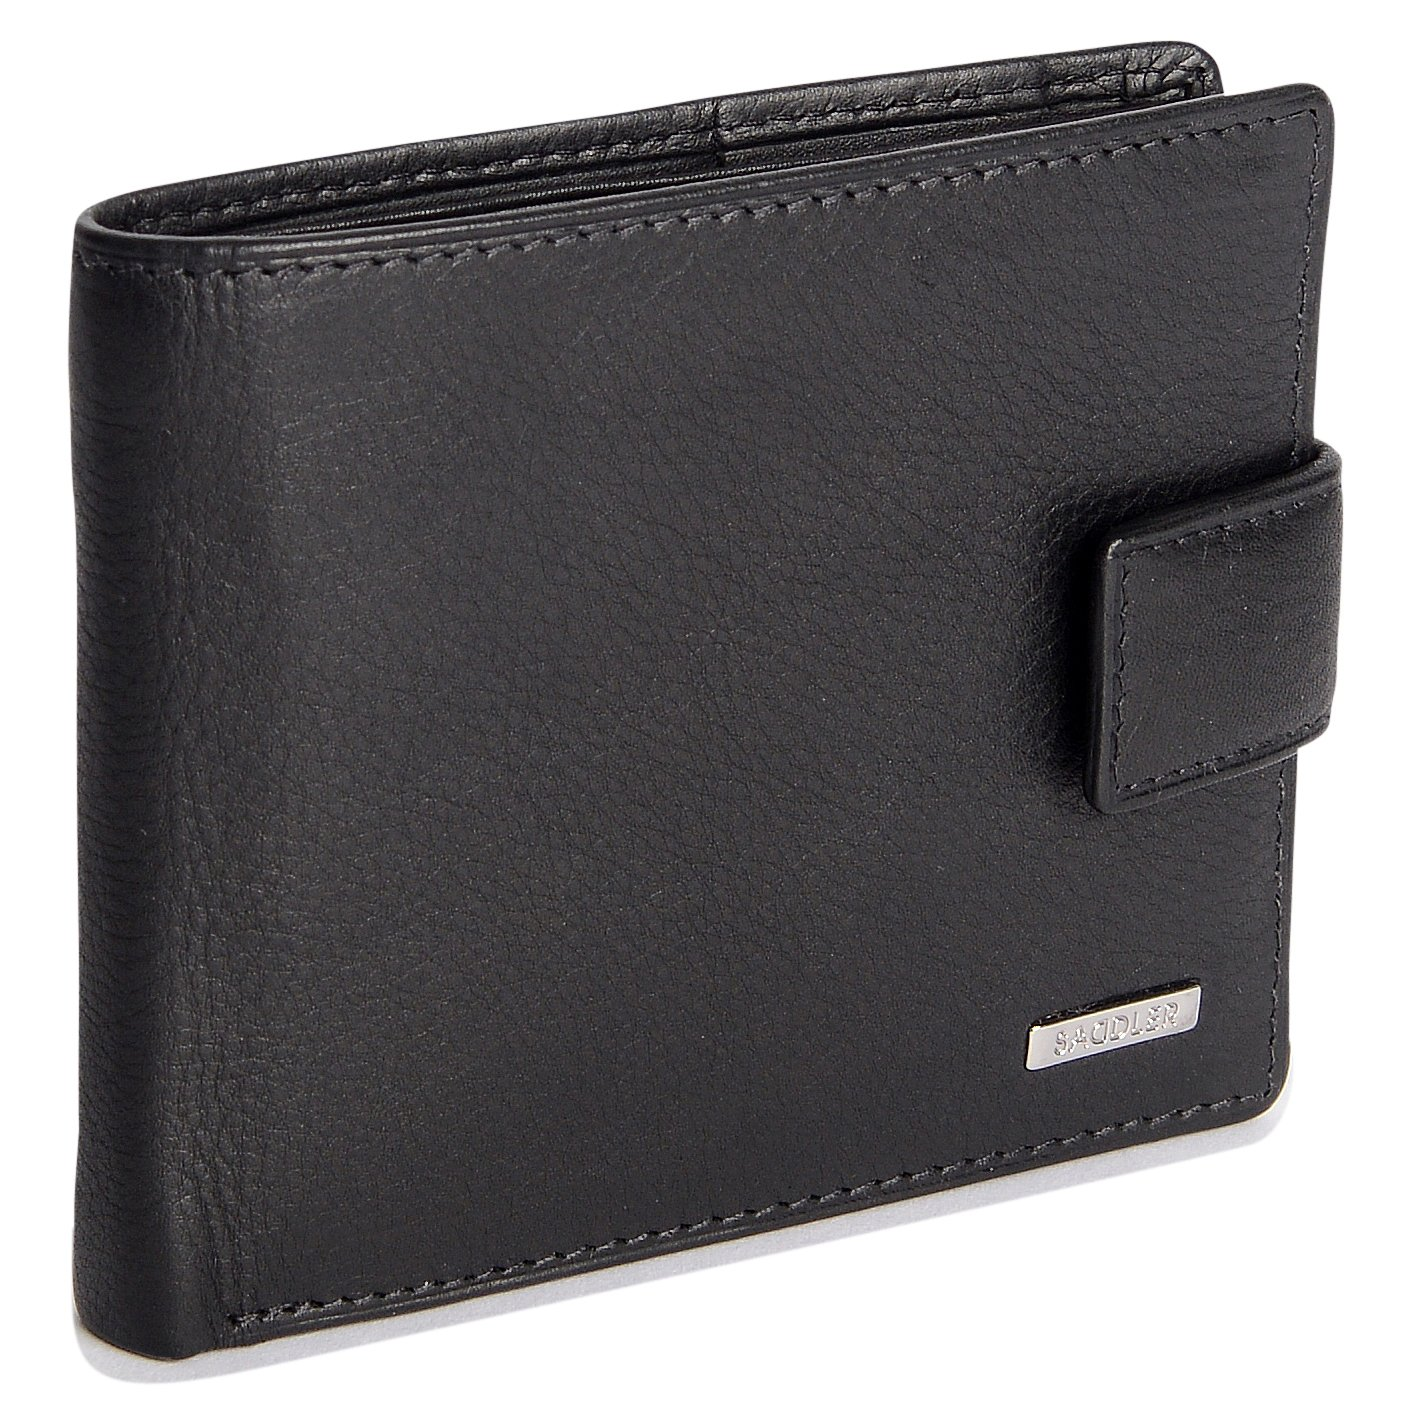 bb7d543329 SADDLER Soft Nappa Leather 10 Credit Card Billfold with Tab and Zipper Coin  Purse at Amazon Men s Clothing store